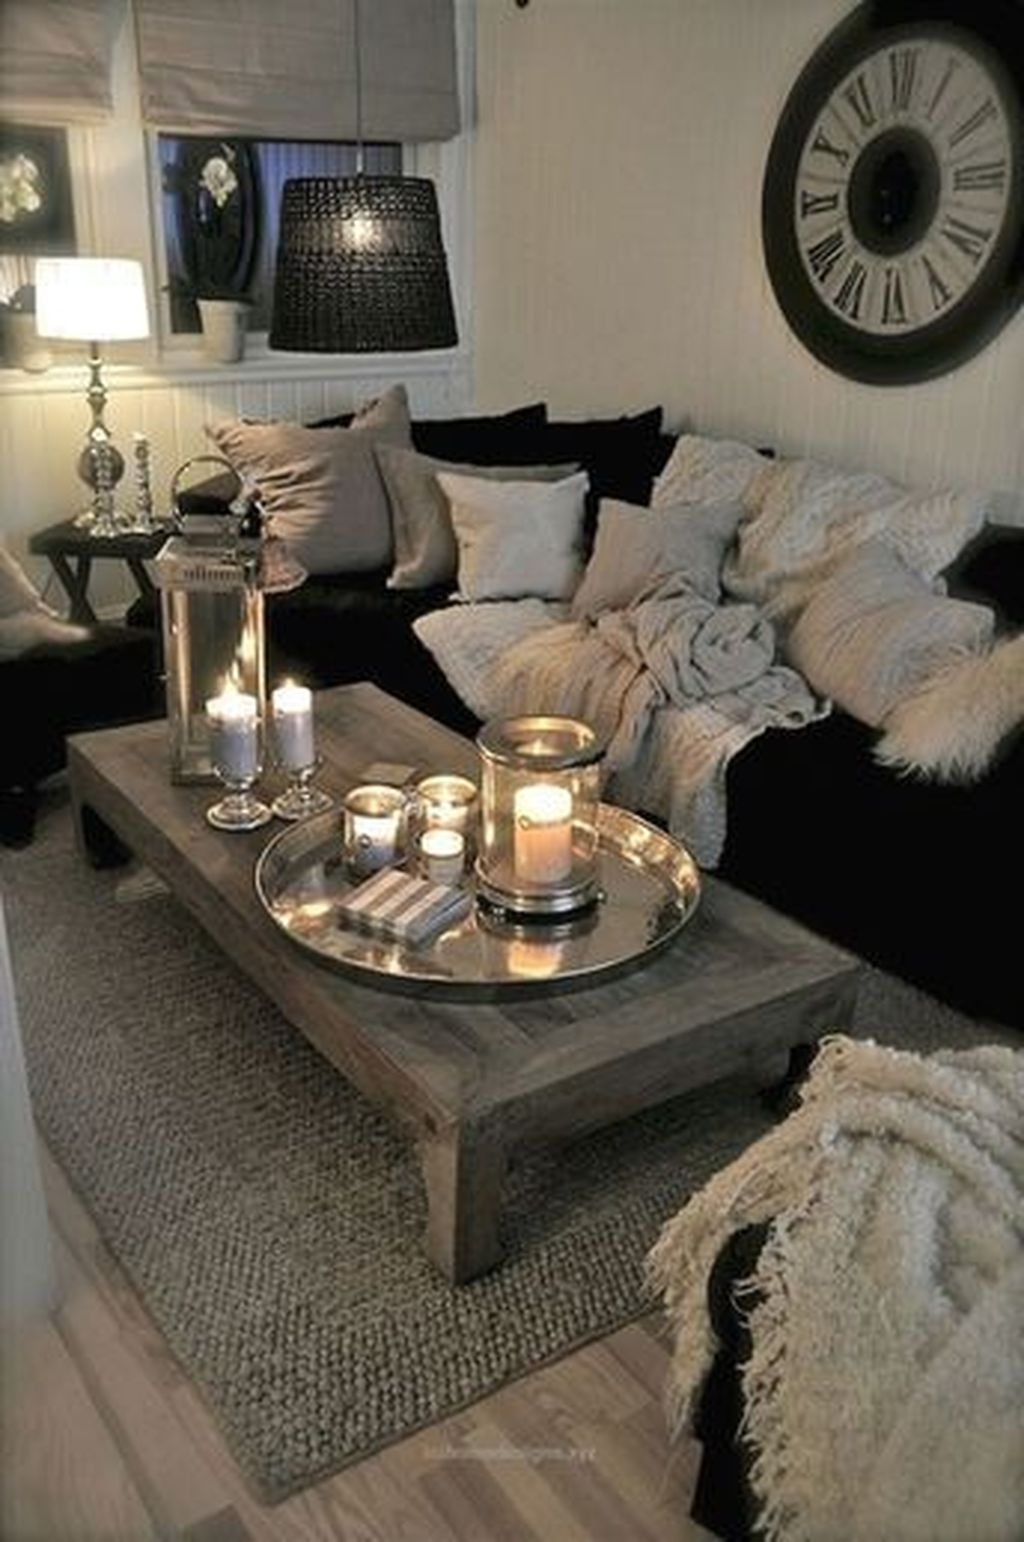 Cool 48 Awesome Decorating Ideas For Small Apartments More At S Homystyle